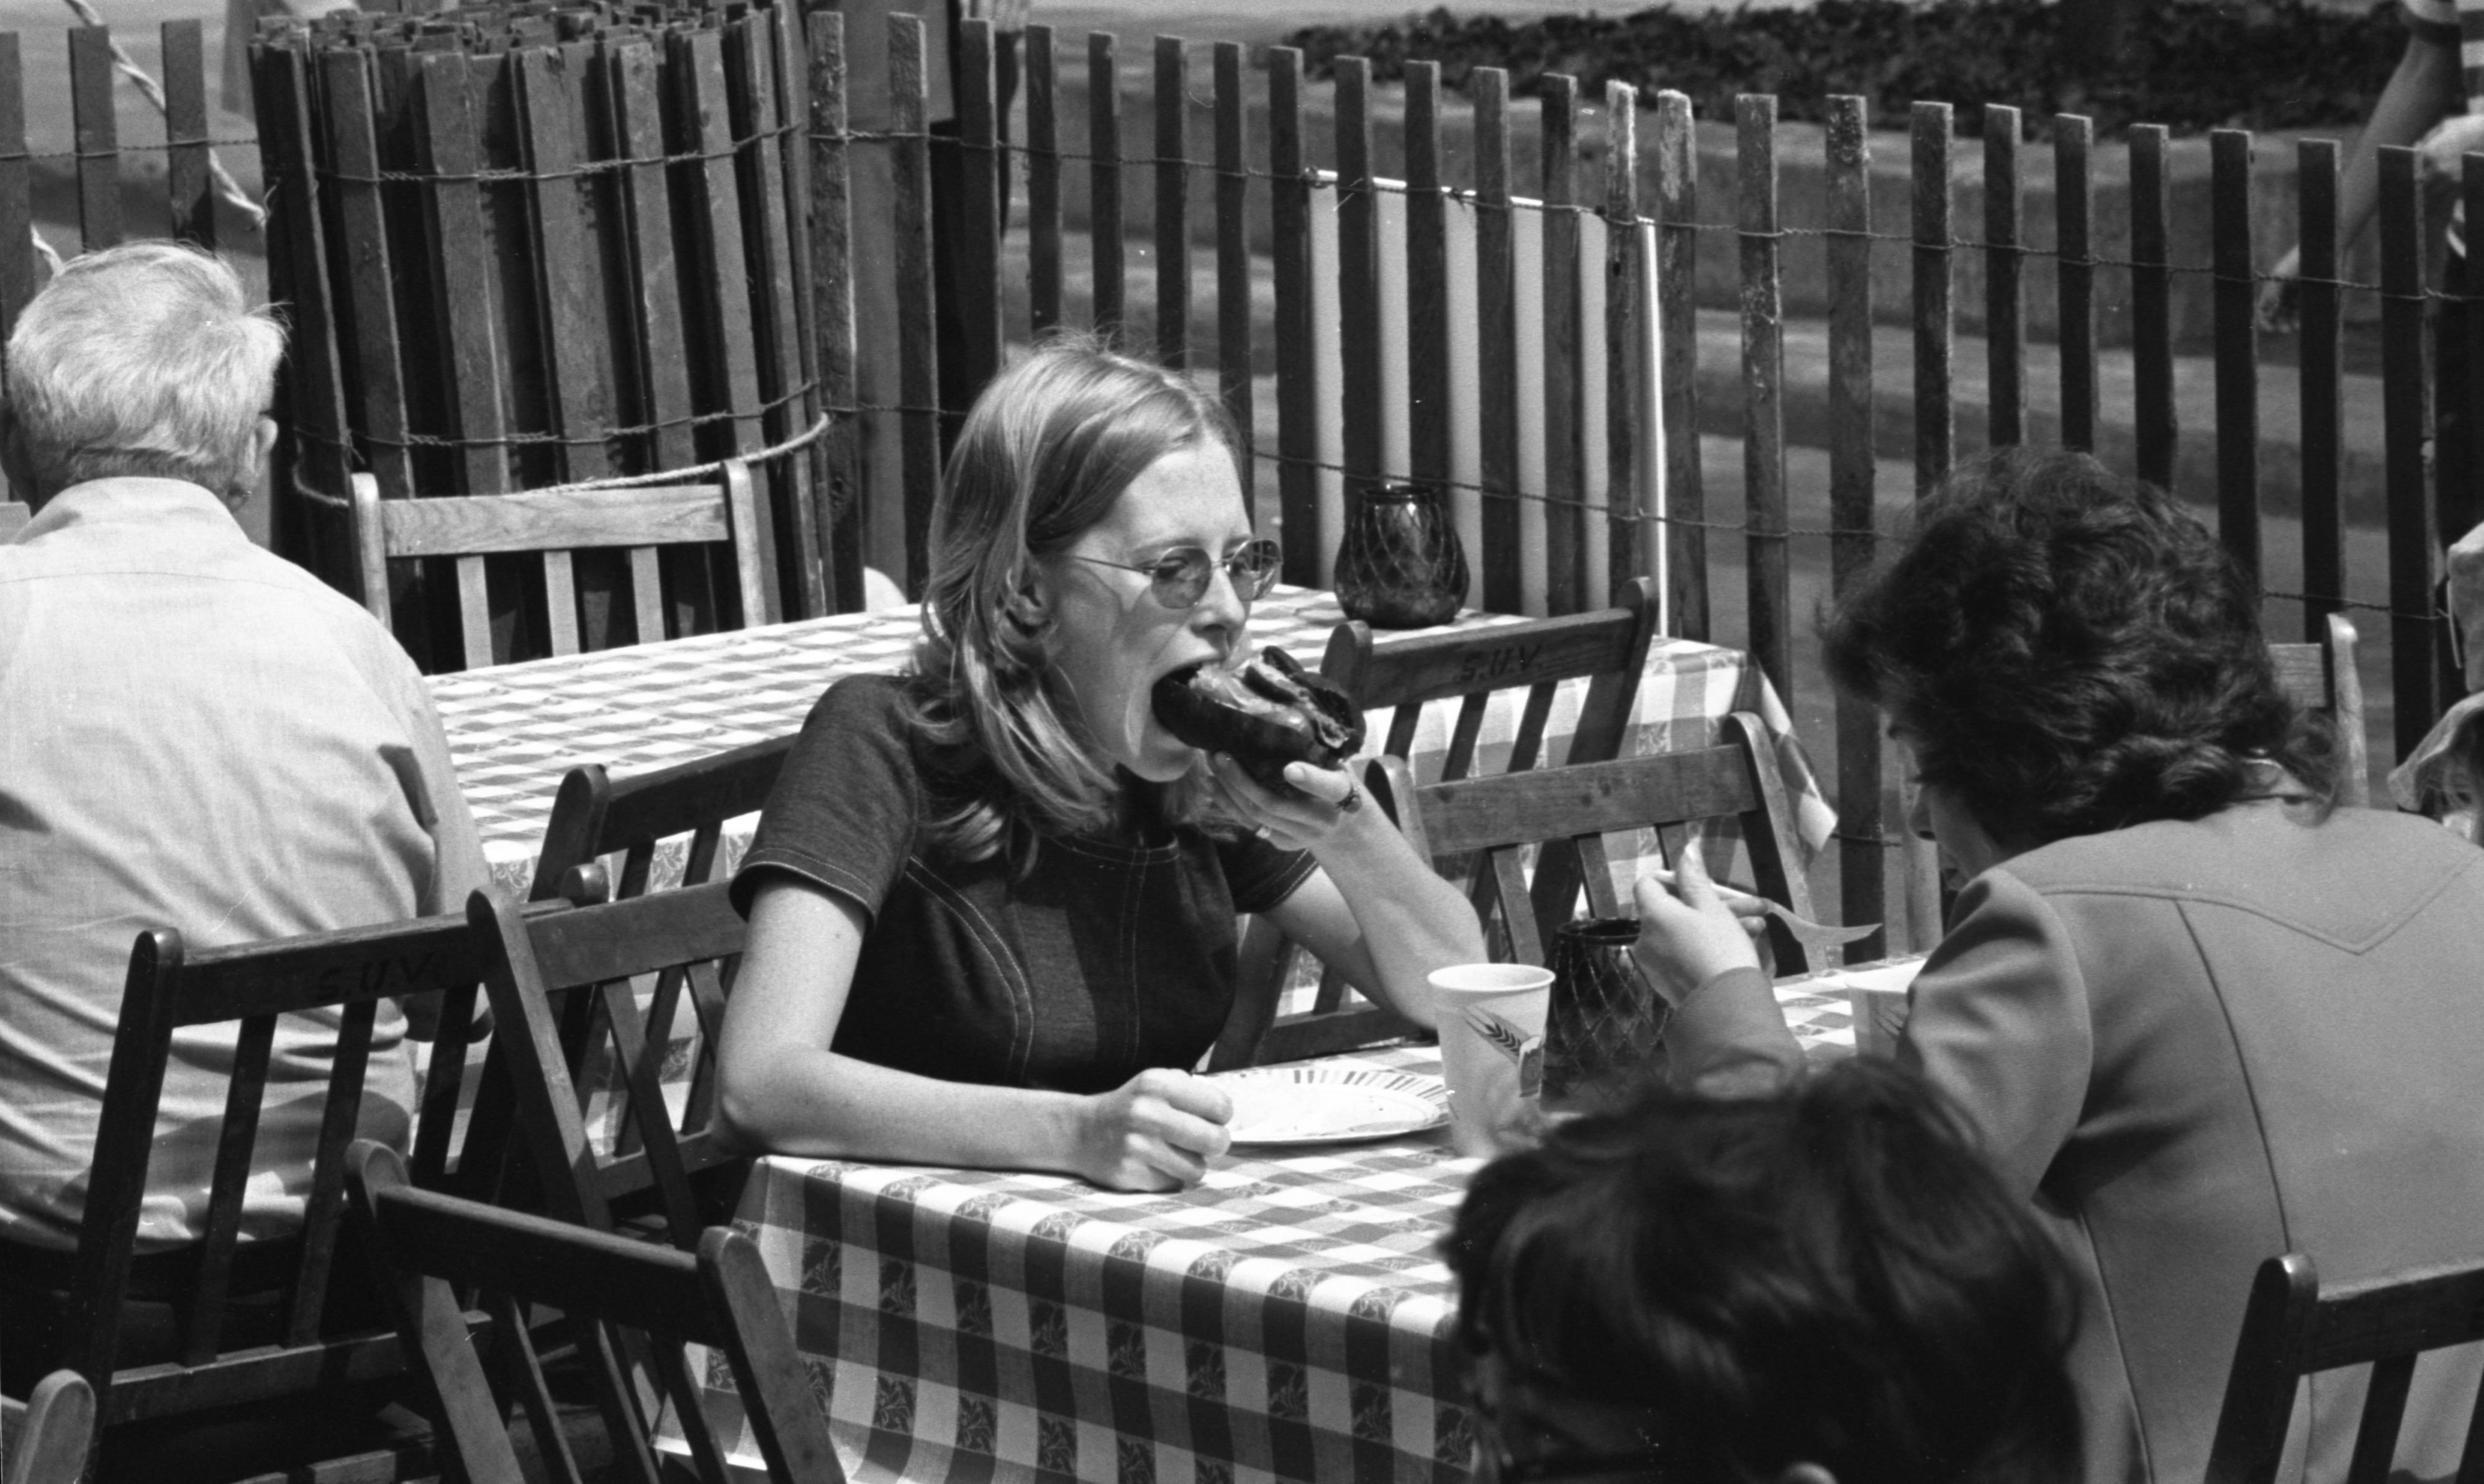 Sally Bush Eats At German Tent In The Ann Arbor Ethnic Fair, September 1974 image